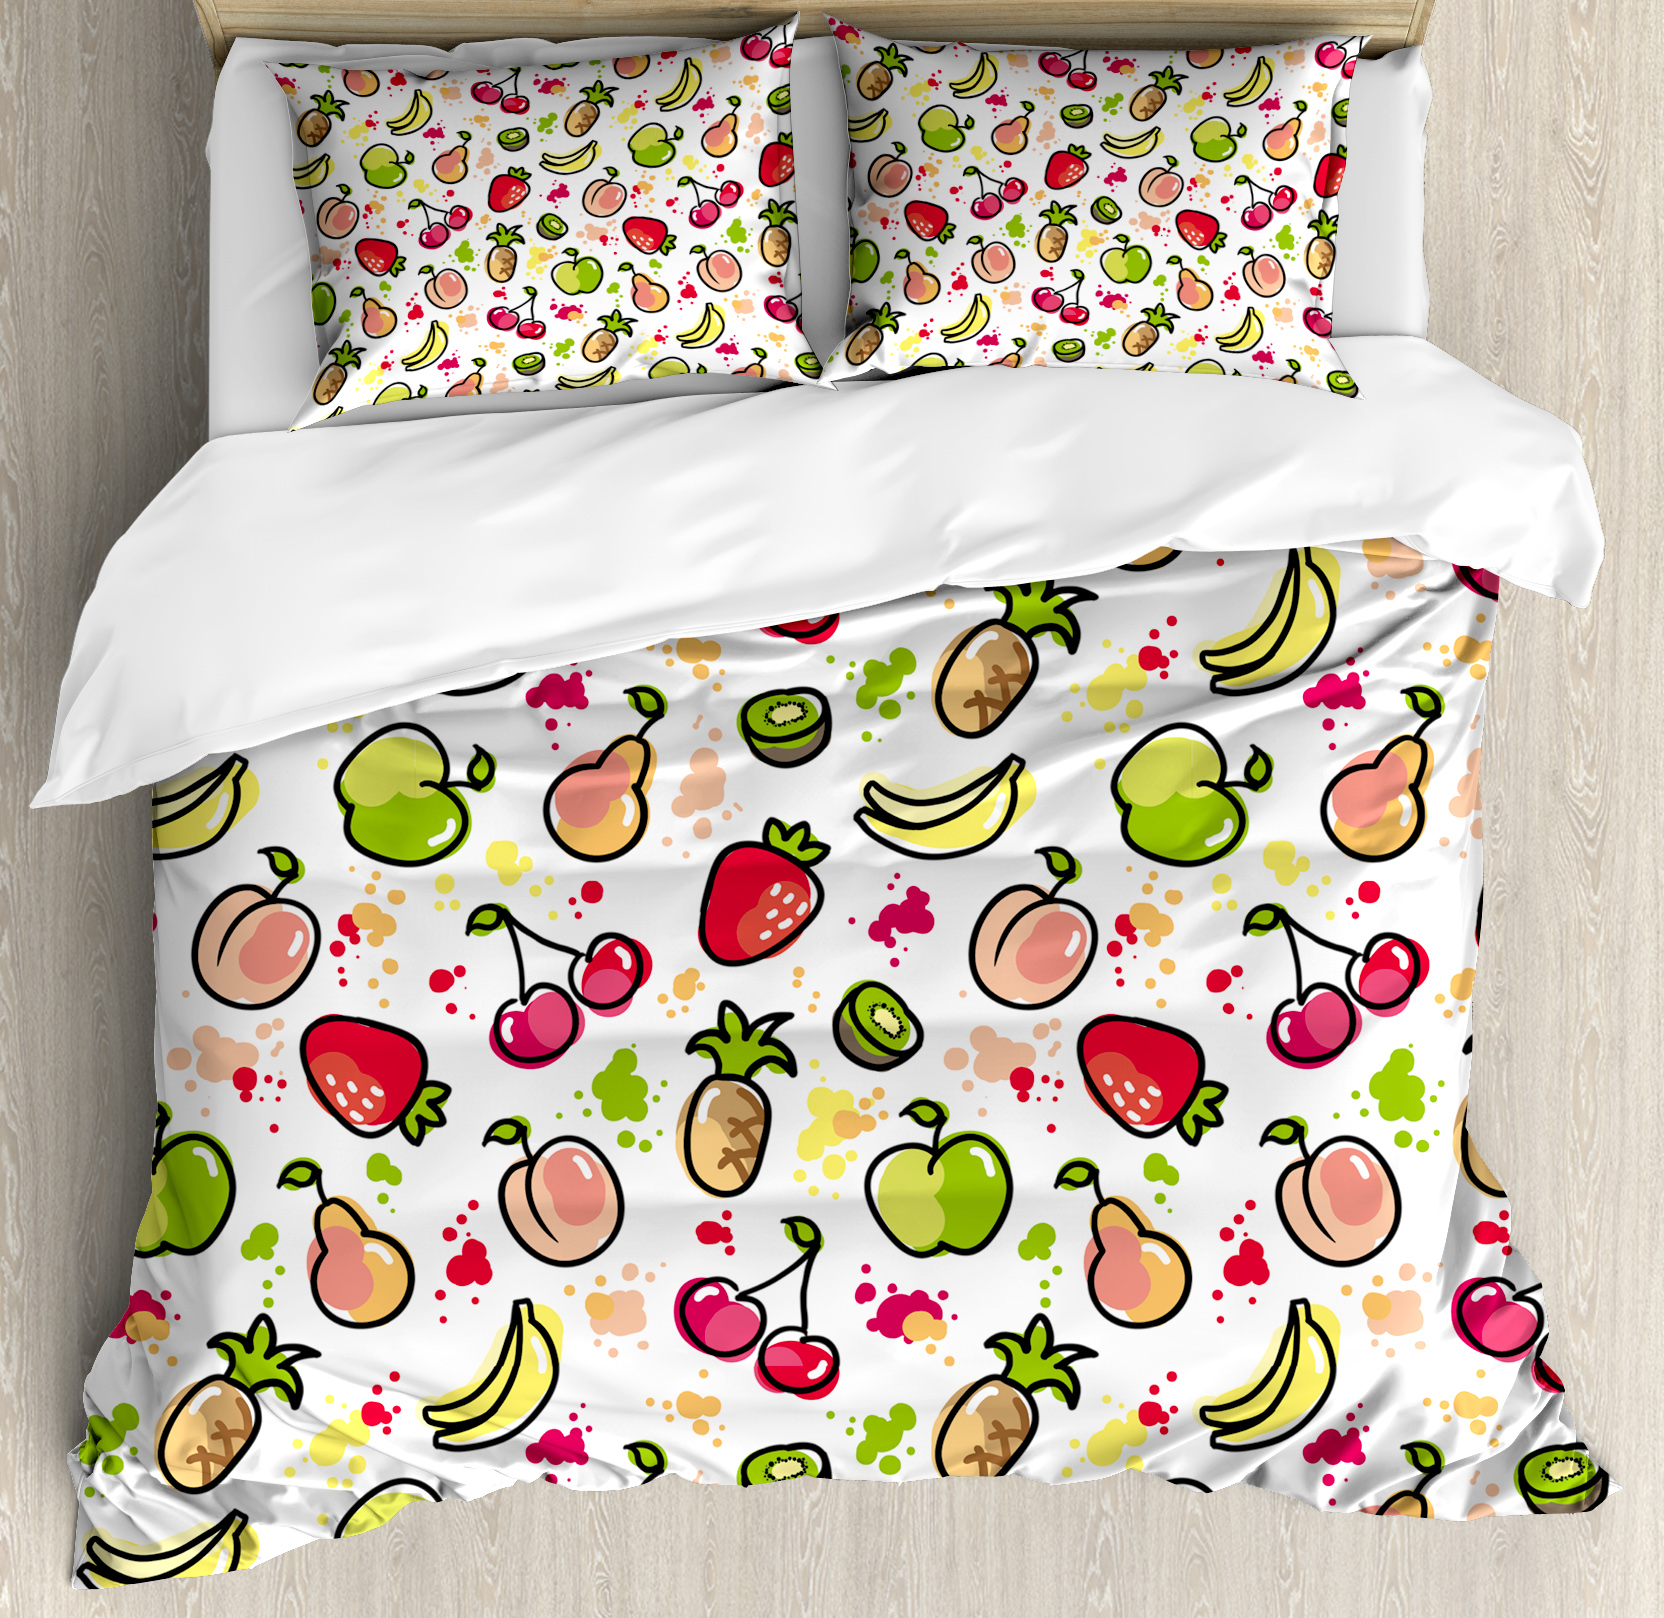 Fruits King Size Duvet Cover Set, Watercolor Pear Cherries Kiwi Apple Brushstroke Splashes... by Kozmos